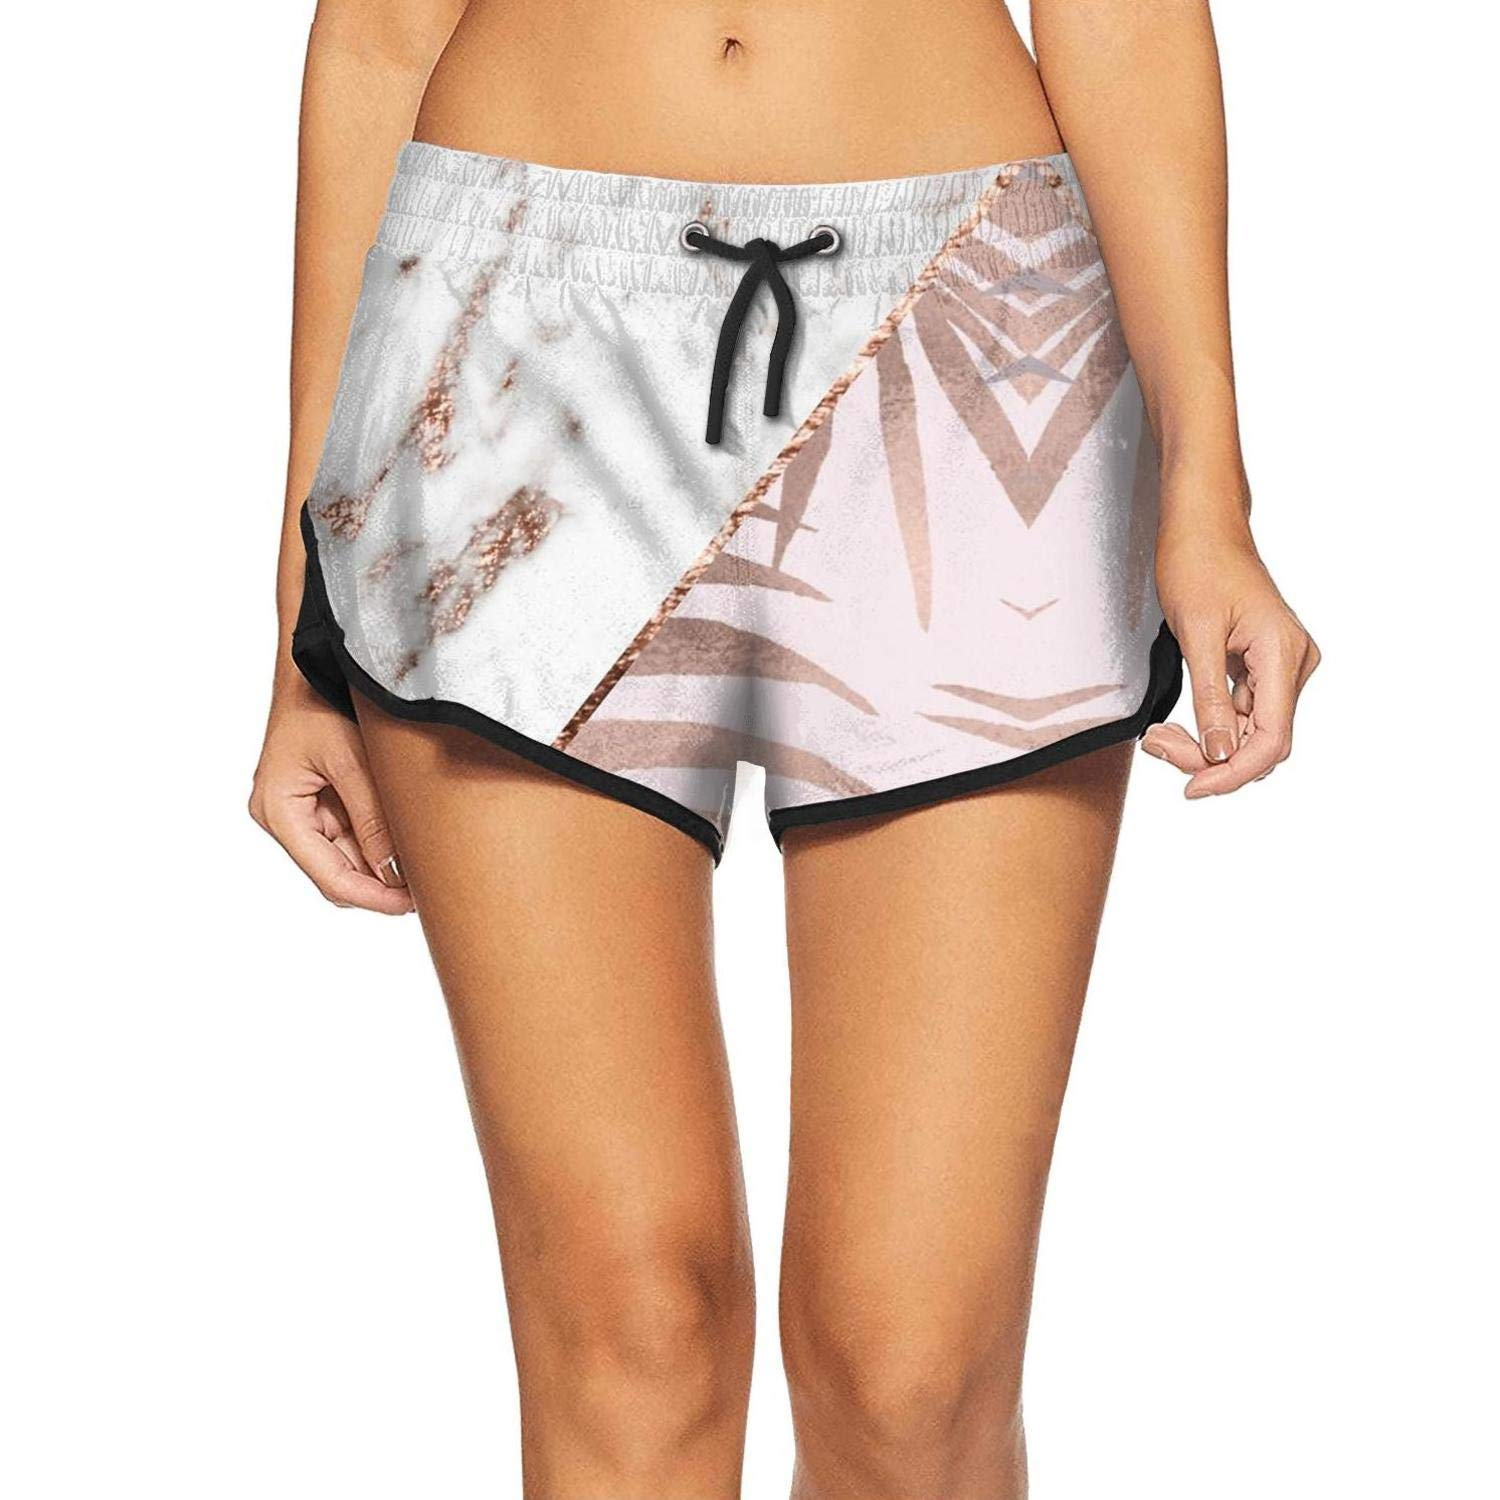 Rose Gold Marble Geometric Womens Swimming Trunks Waterproof Adjustabl for Vacation